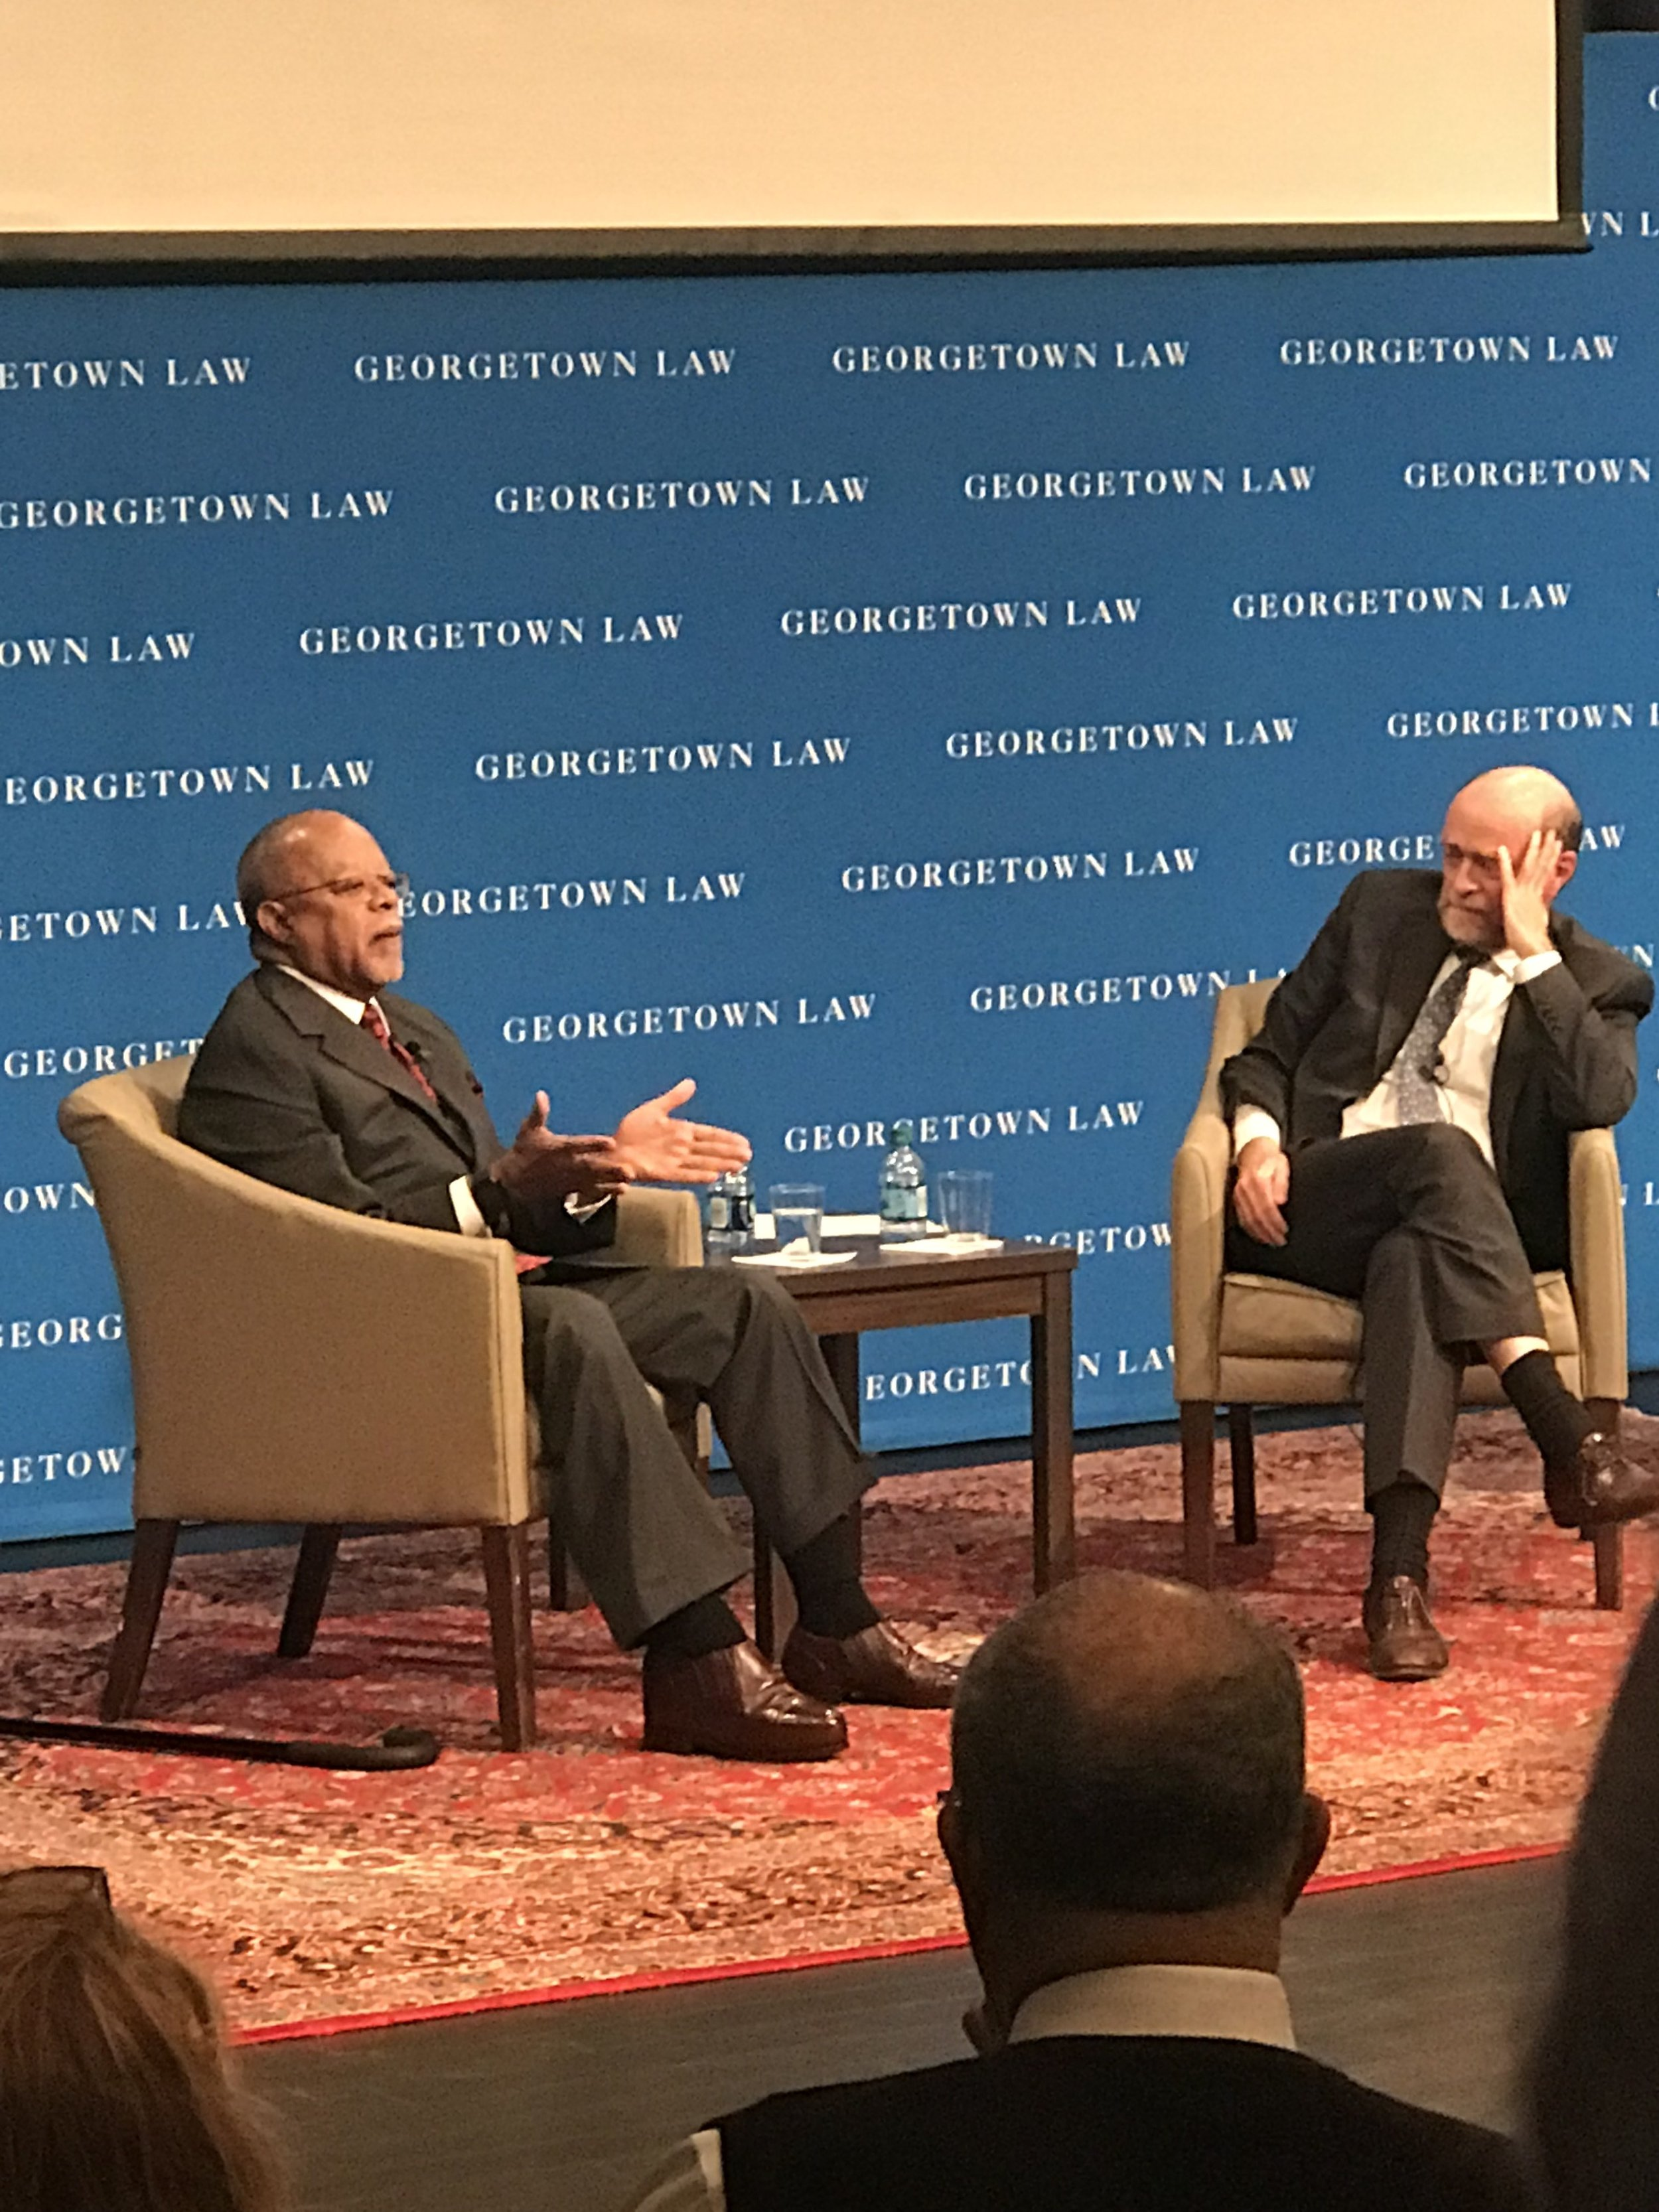 Harvard University Professor Henry Louis Gates, Jr. and Georgetown Law Dean William Treanor Source: CALIFORNIA IS ME